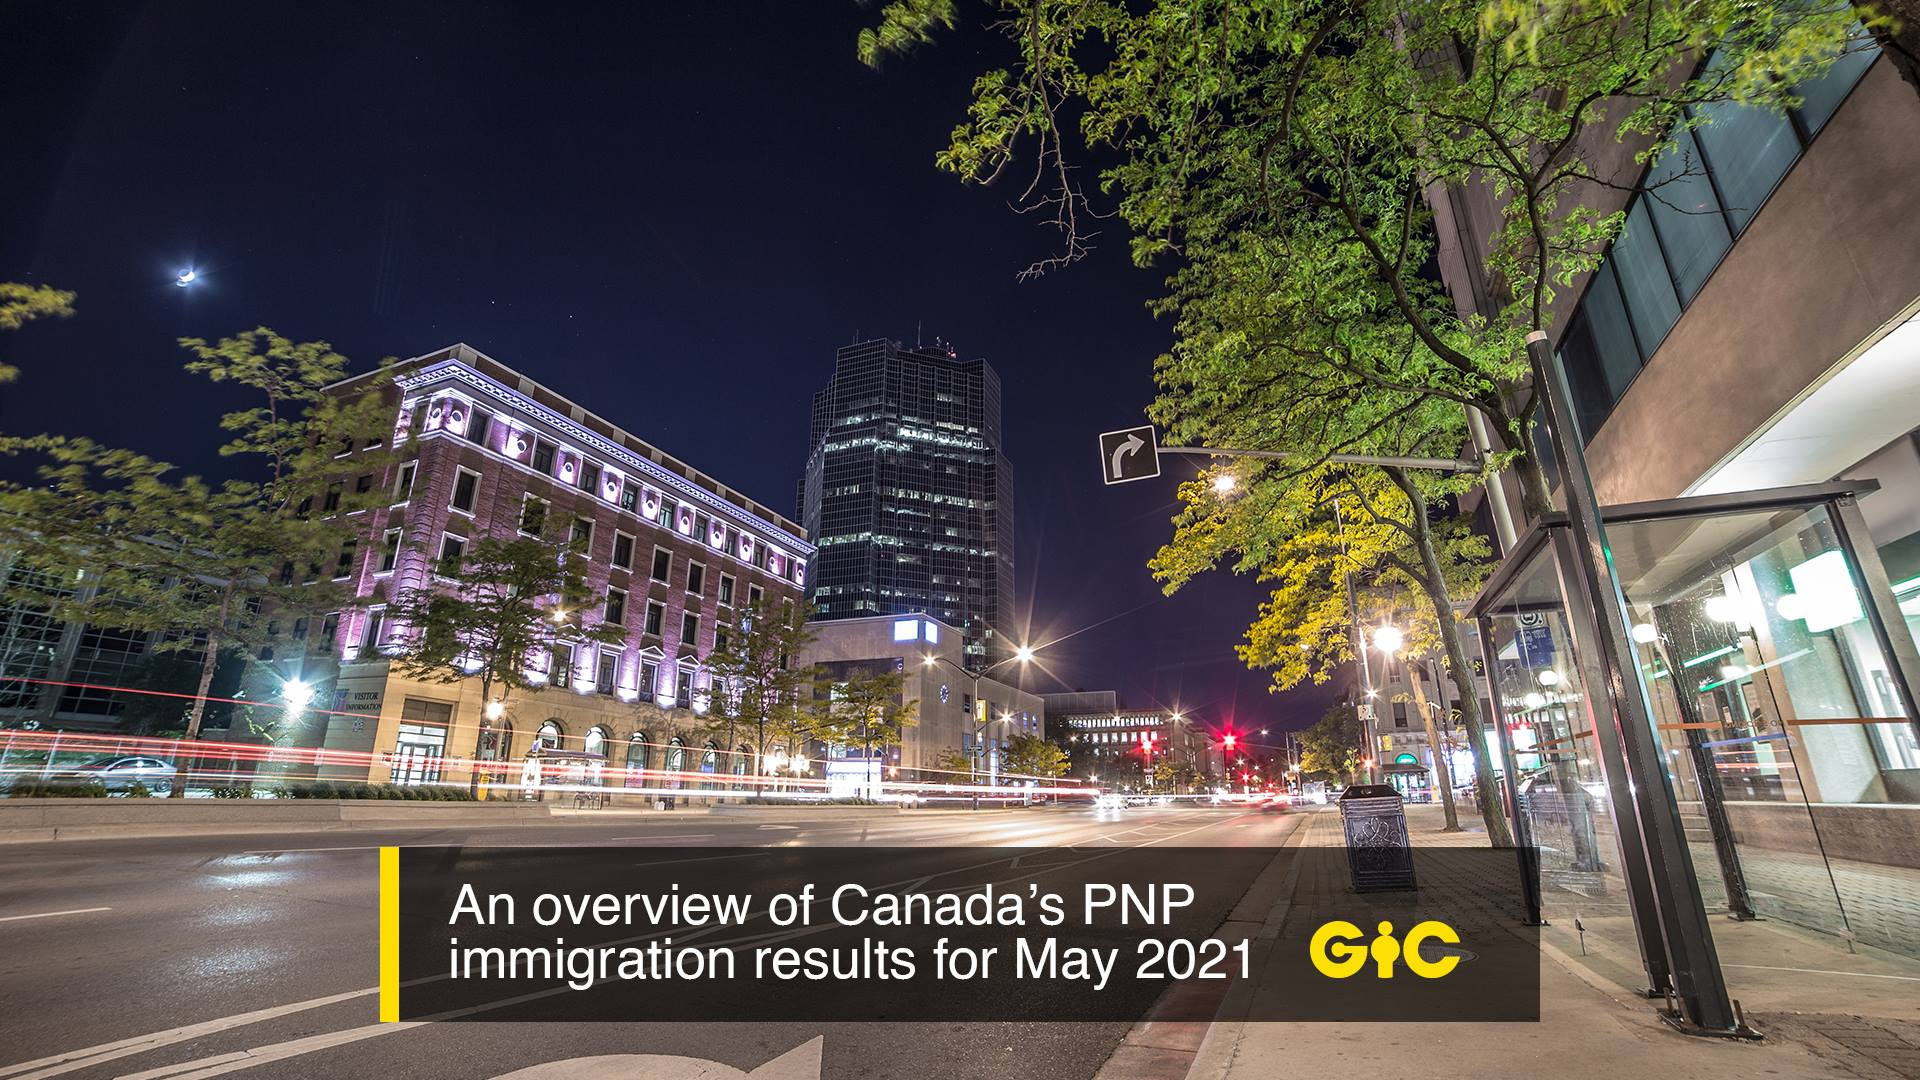 An overview of Canada's PNP immigration results for May 2021